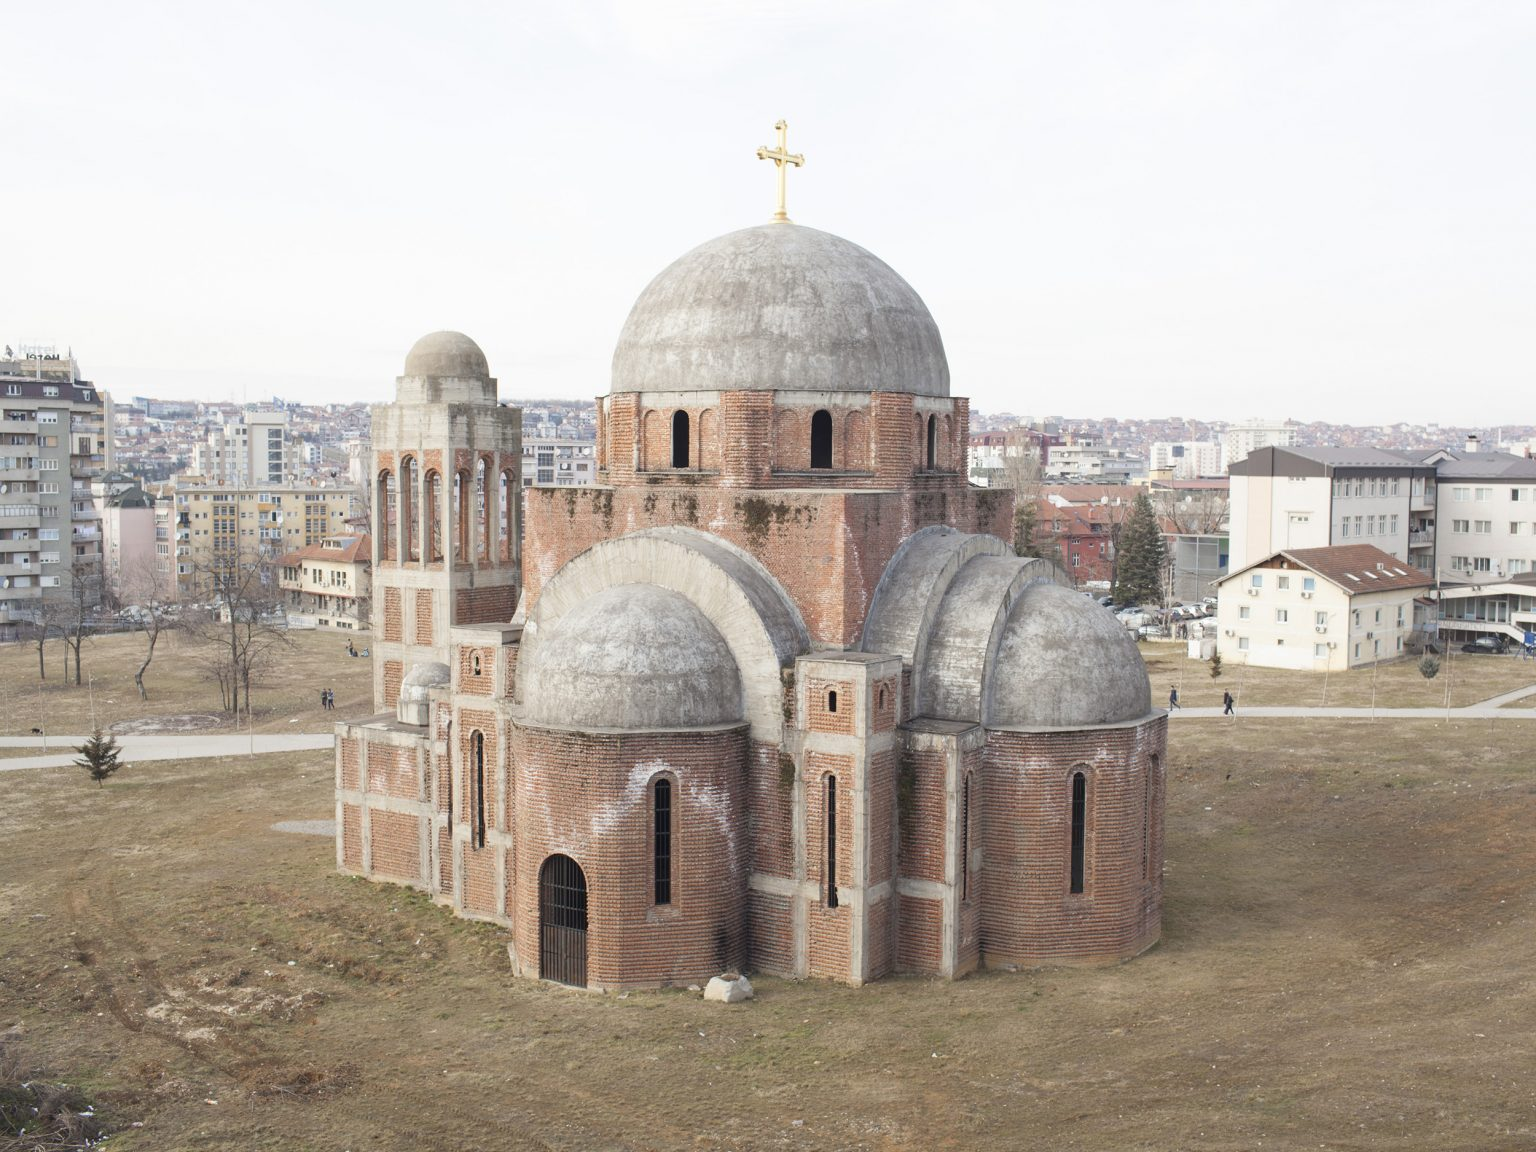 View of the church of Christ the Saviour in Prishtina / Priština, an unfinished Serbian Orthodox Christian church whose construction began in 1995 on land now contended by the University.